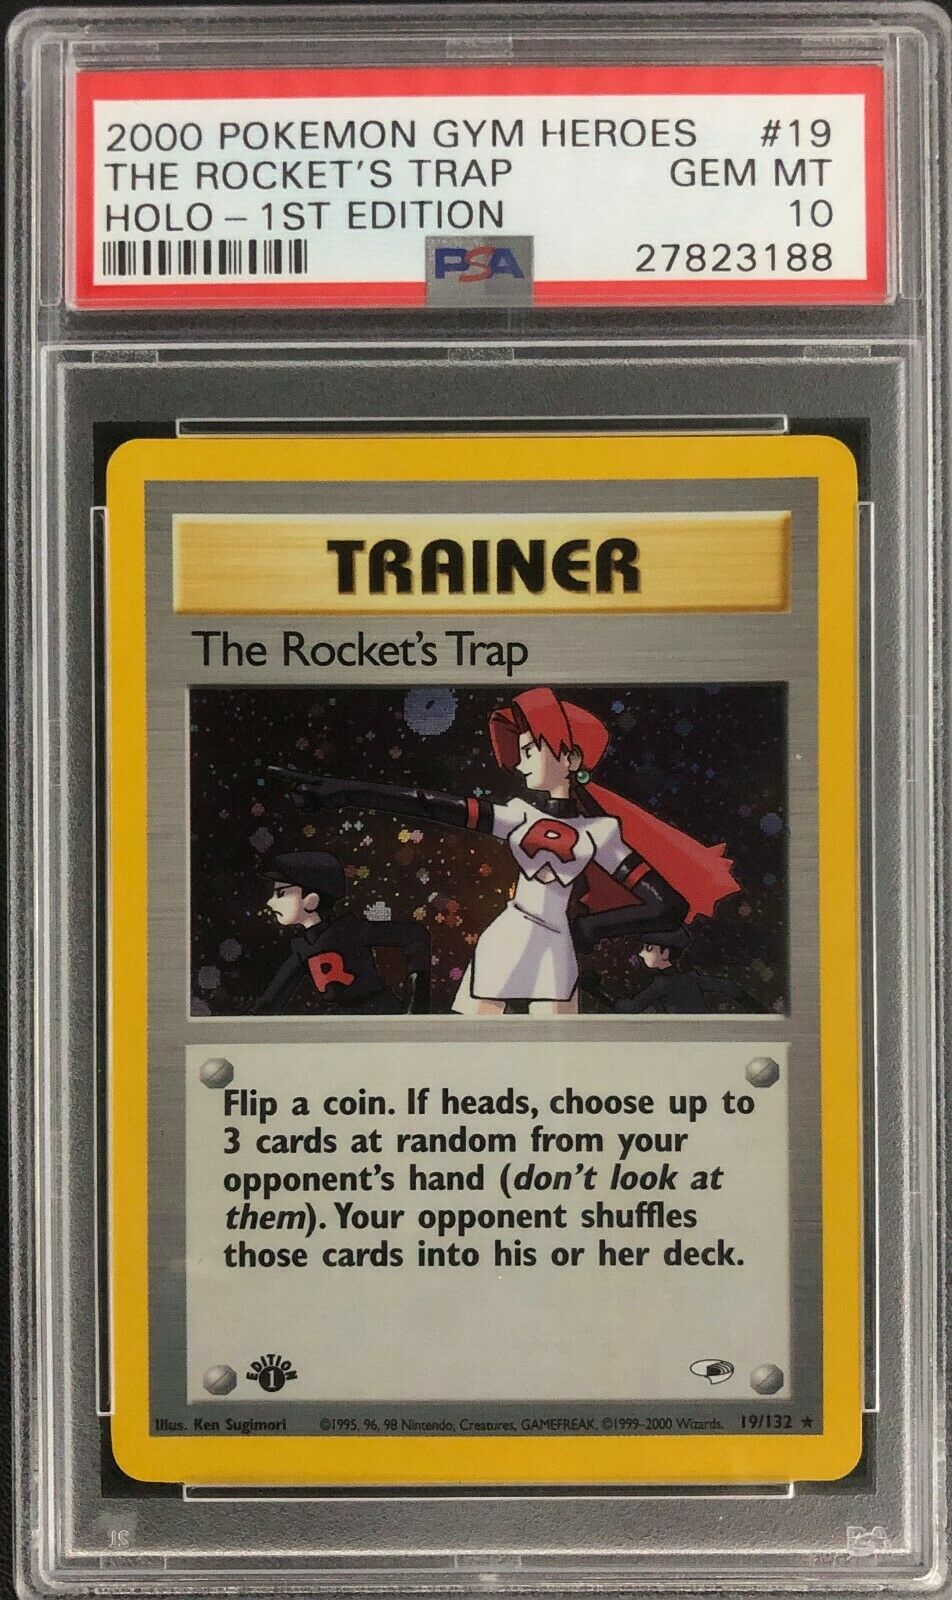 1st Edition Gym Heroes The Rockets Trap Holo Pokemon Card Mint PSA 10